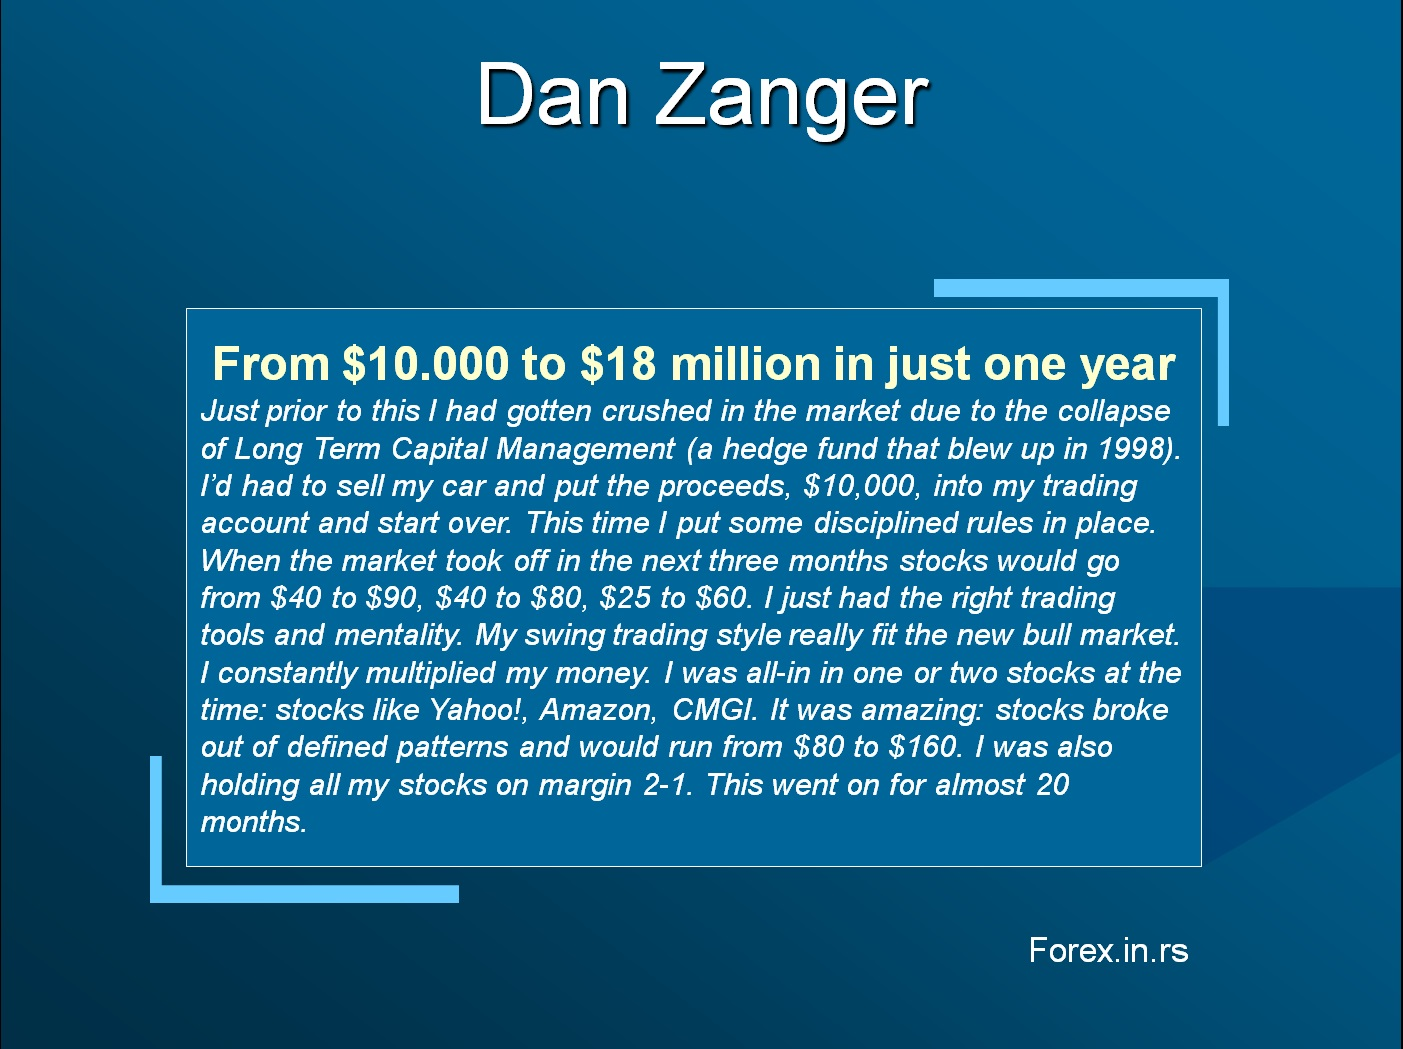 Dan Zanger and stock market success